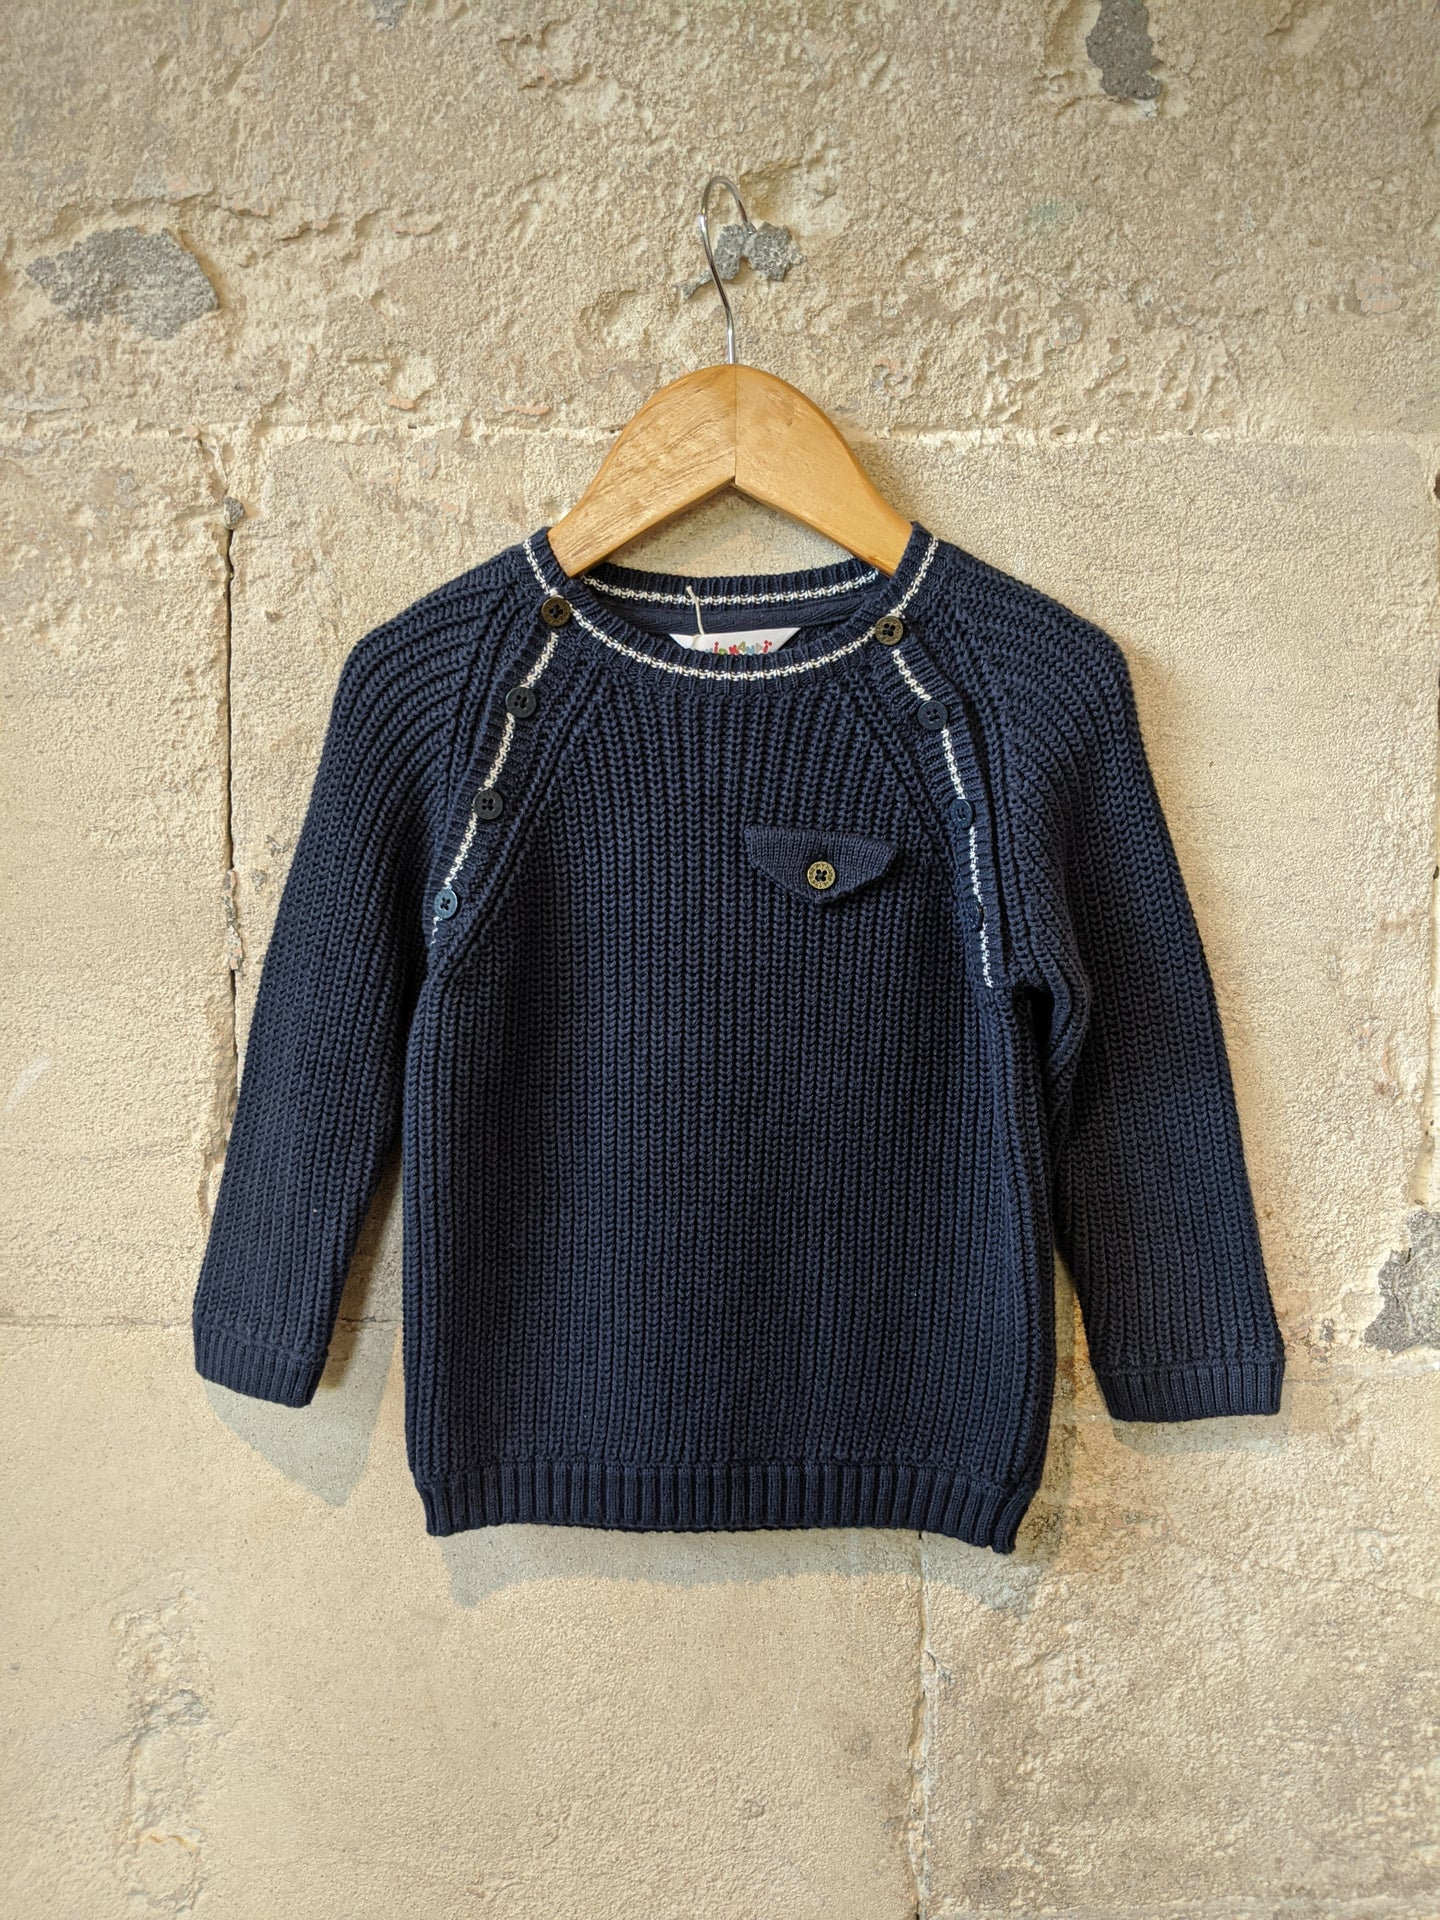 Classic French Navy Cotton Jumper - 18 Months